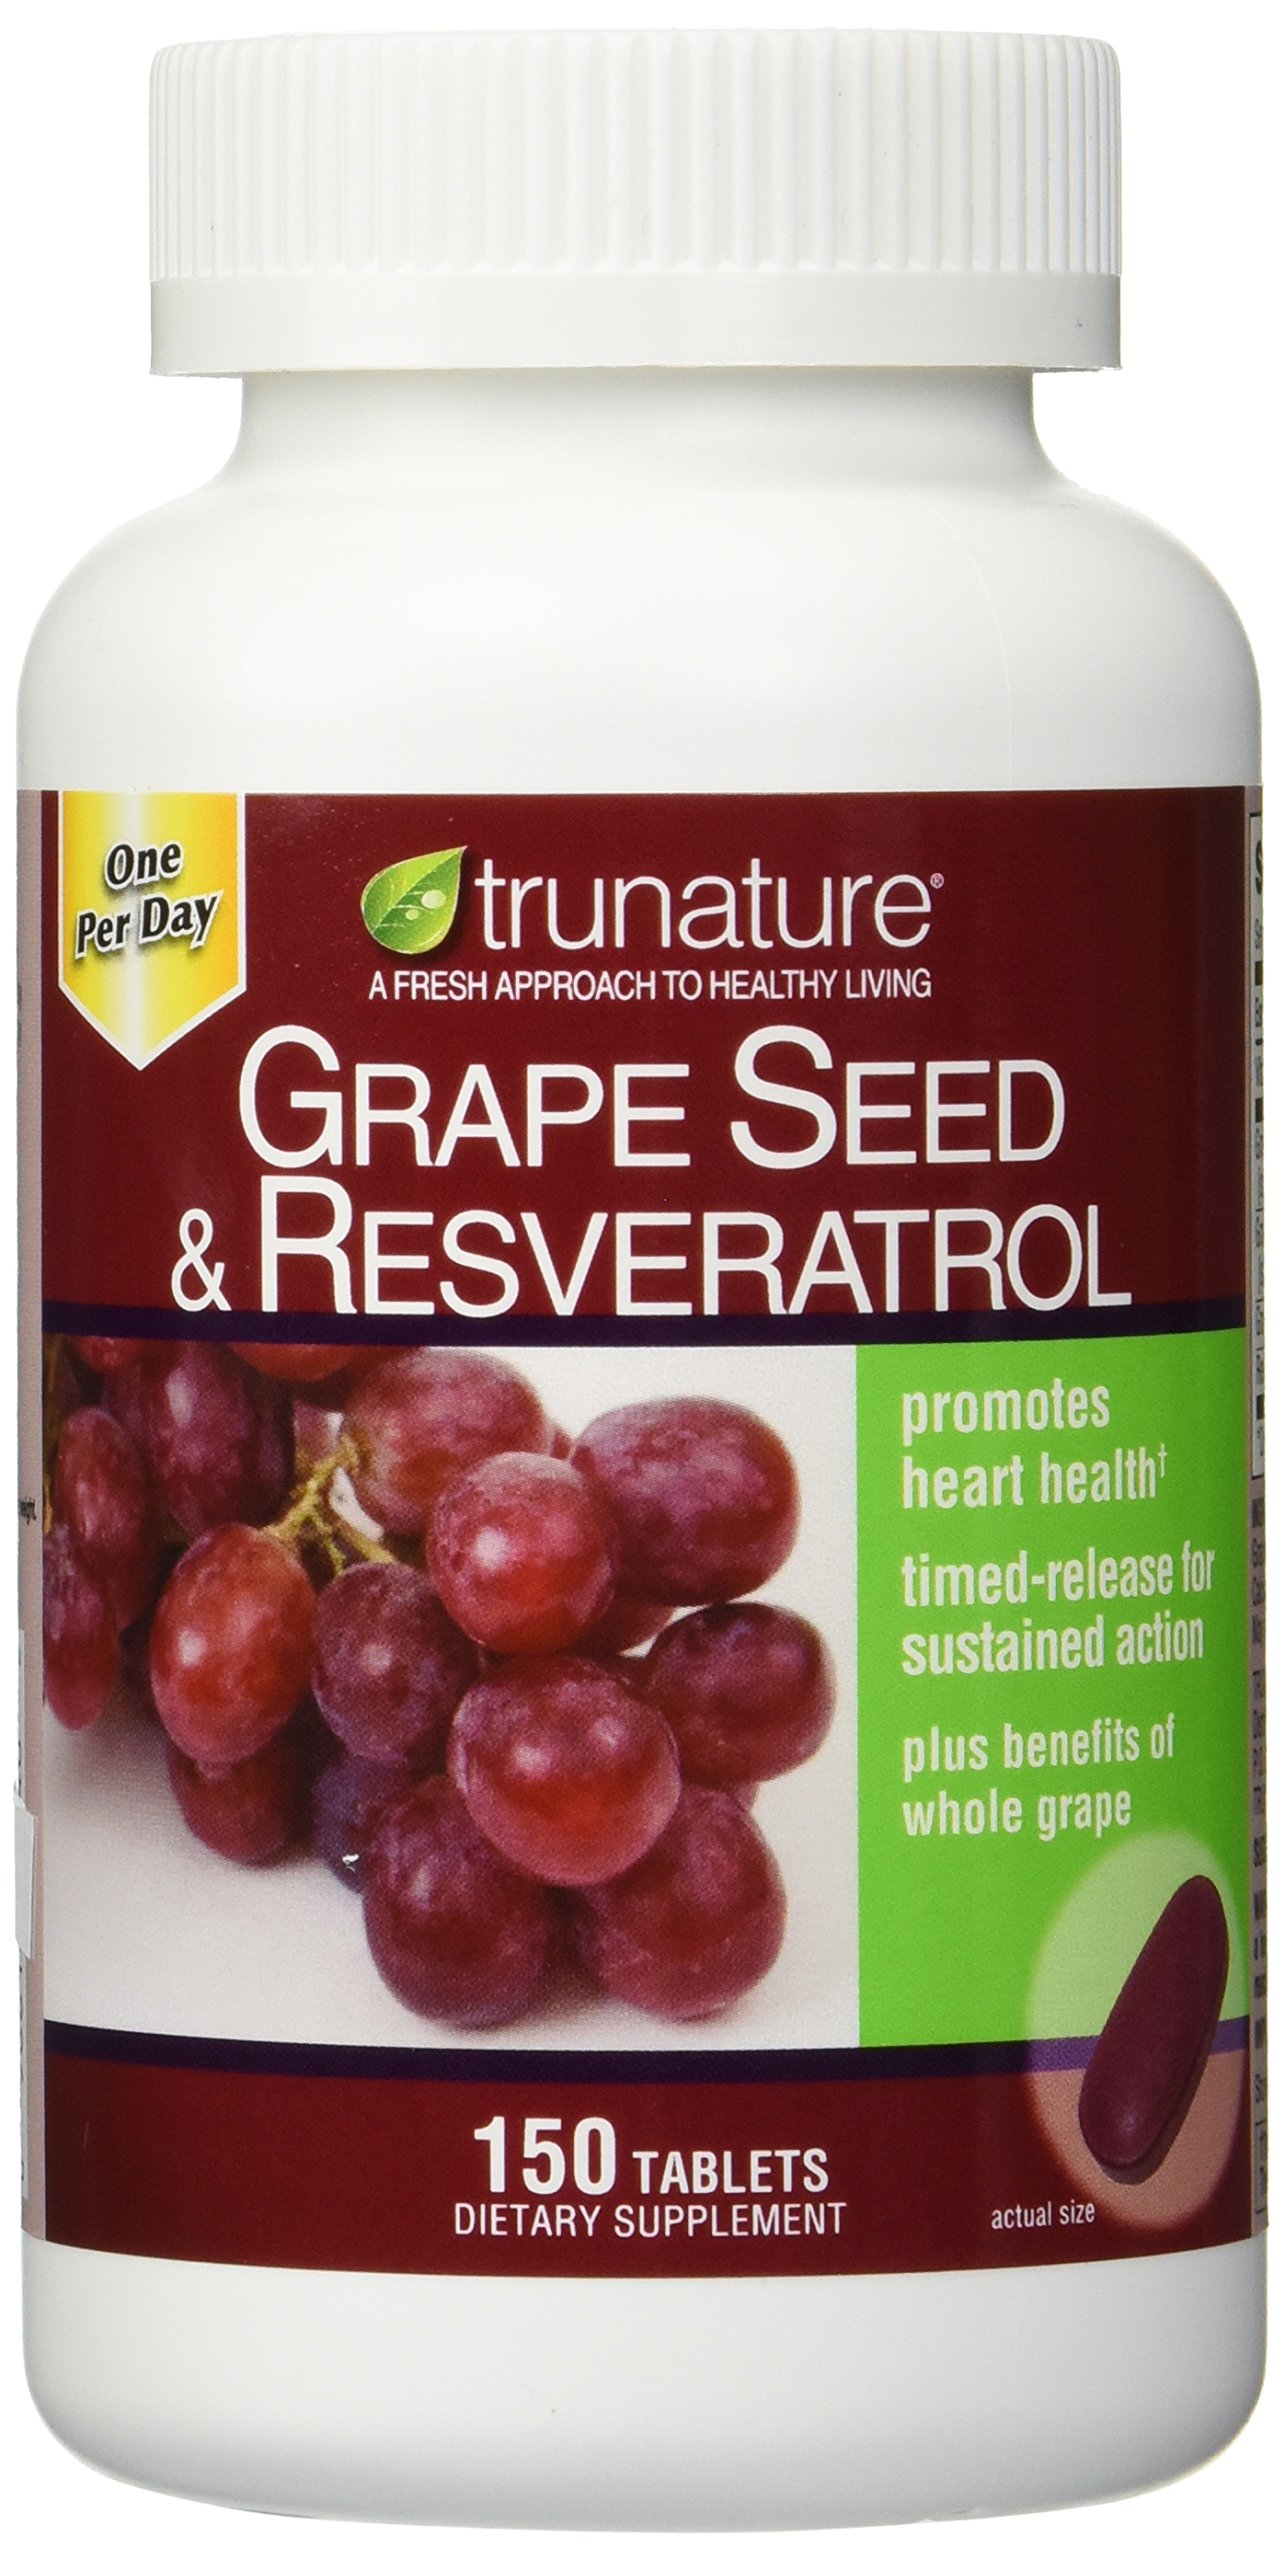 TruNature Grape Seed & Resveratrol - 2 Bottles, 150 Tablets Each by TruNature (Image #1)